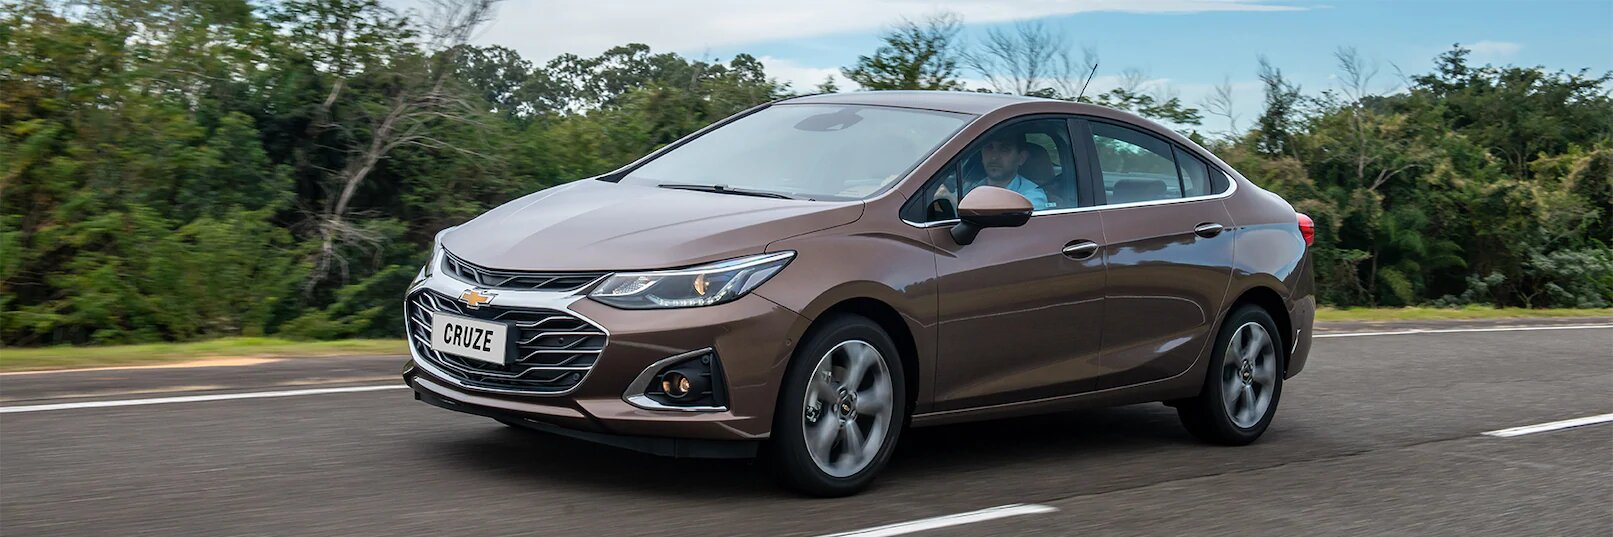 carrossel-cruze-2020-performance-1